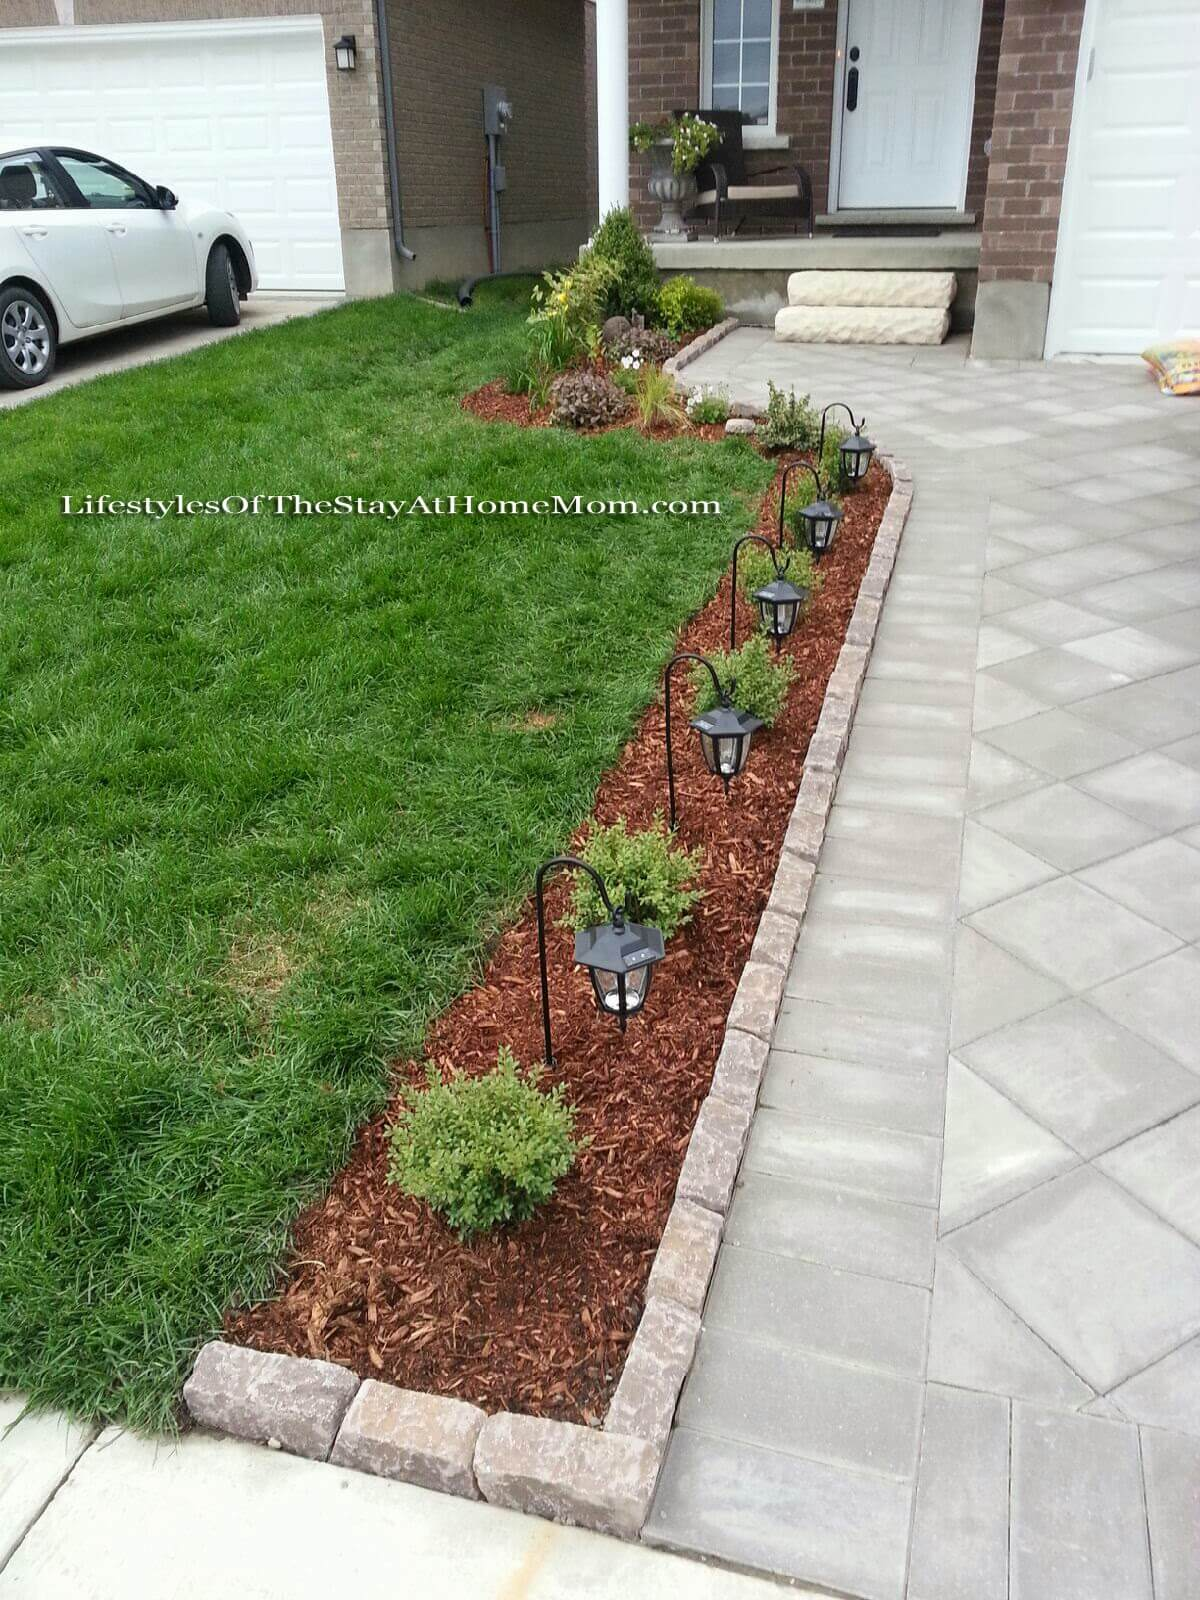 50 Best Front Yard Landscaping Ideas and Garden Designs ... on Landscape Front Yard Ideas  id=29225